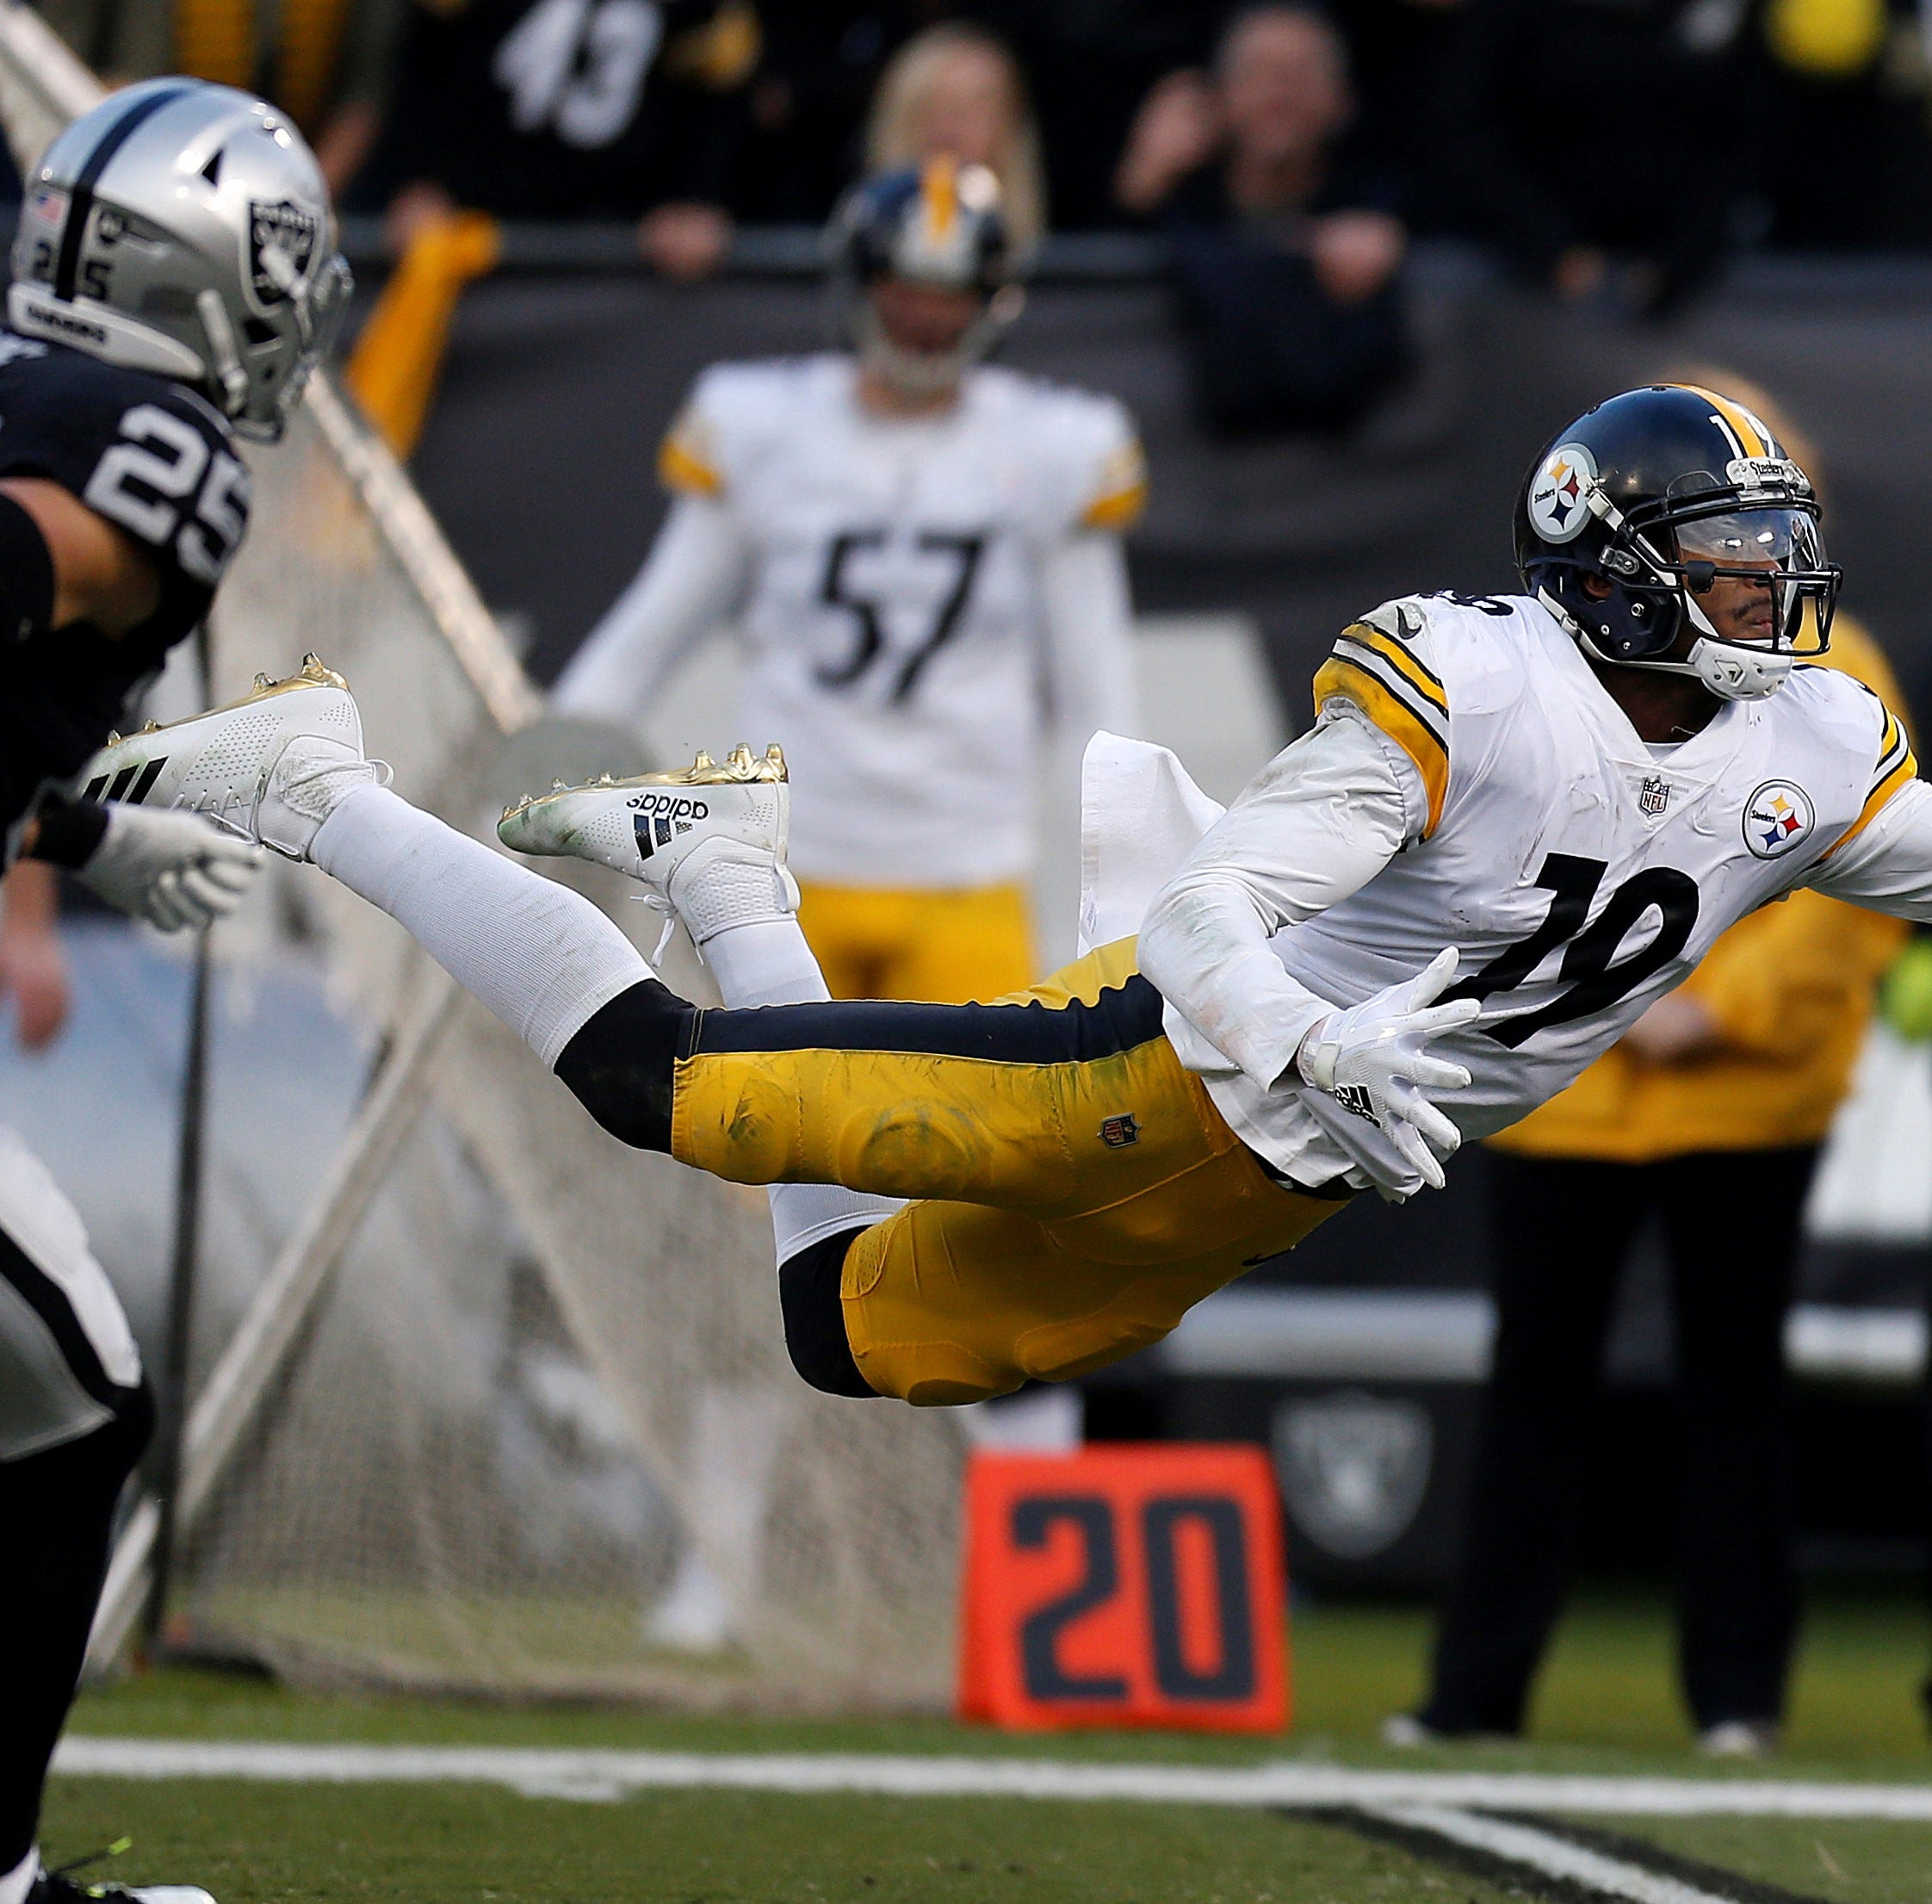 Botched field goal attempt on game's final play dooms Steelers in 24-21 loss to Raiders